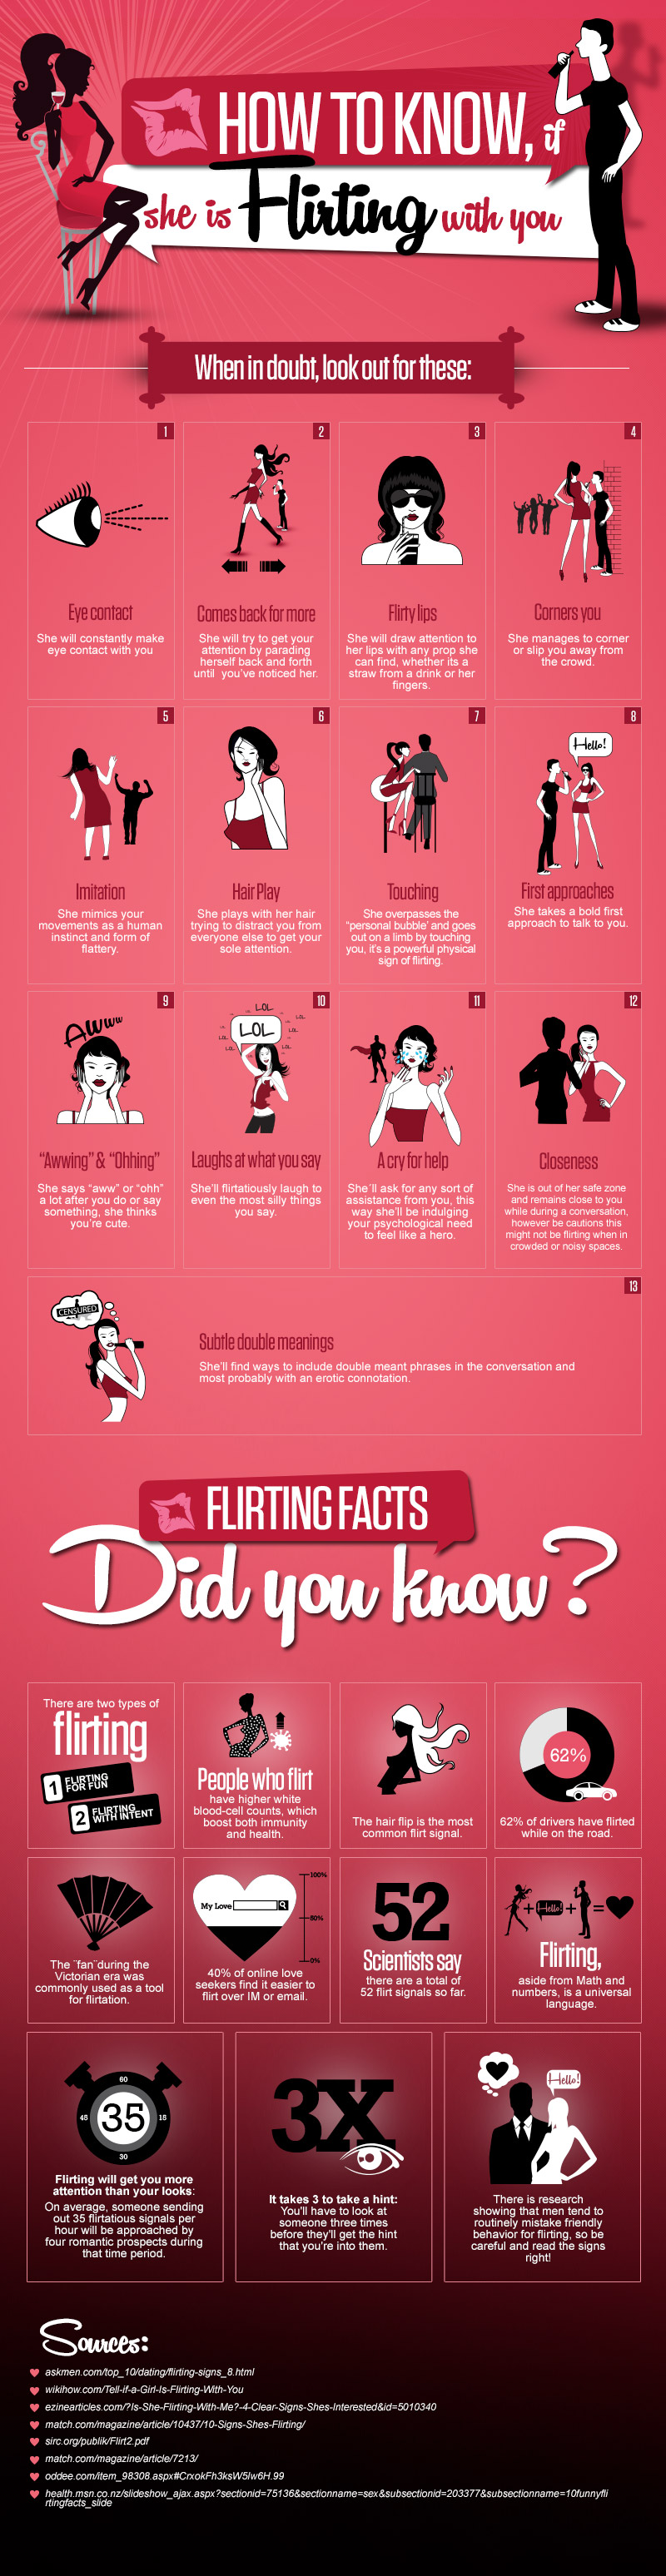 13 Clues and hints for guys to know if a girl really flirting with you, 13 Sign If She Is Flirting With You [infographic], flirting facts image